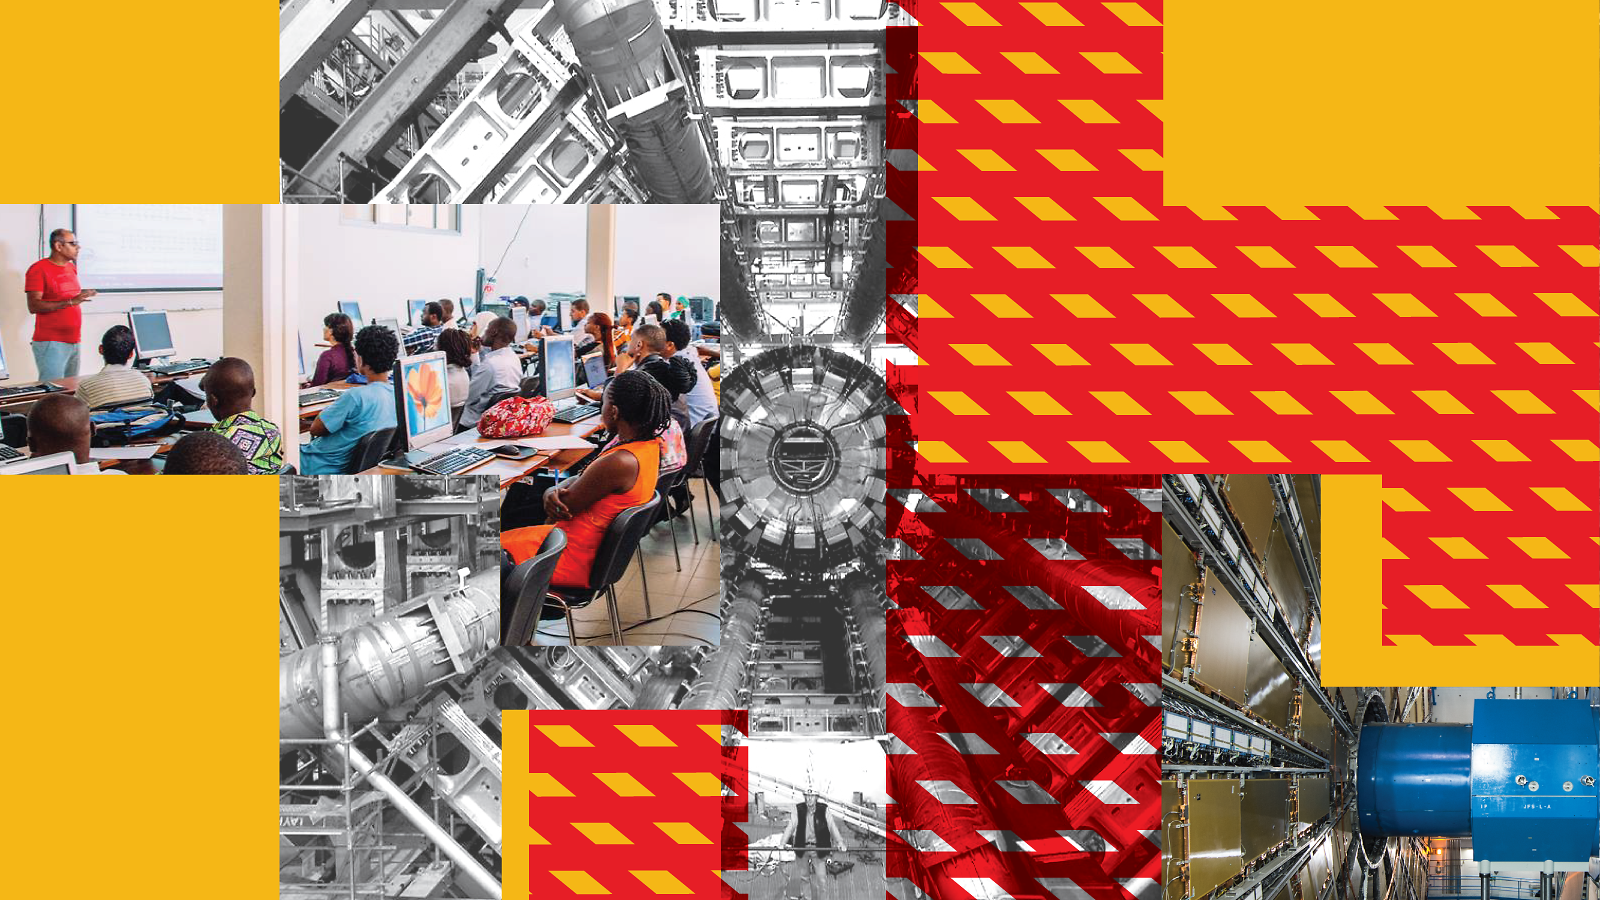 Yellow and red collage of ATLAS machine and students in classroom